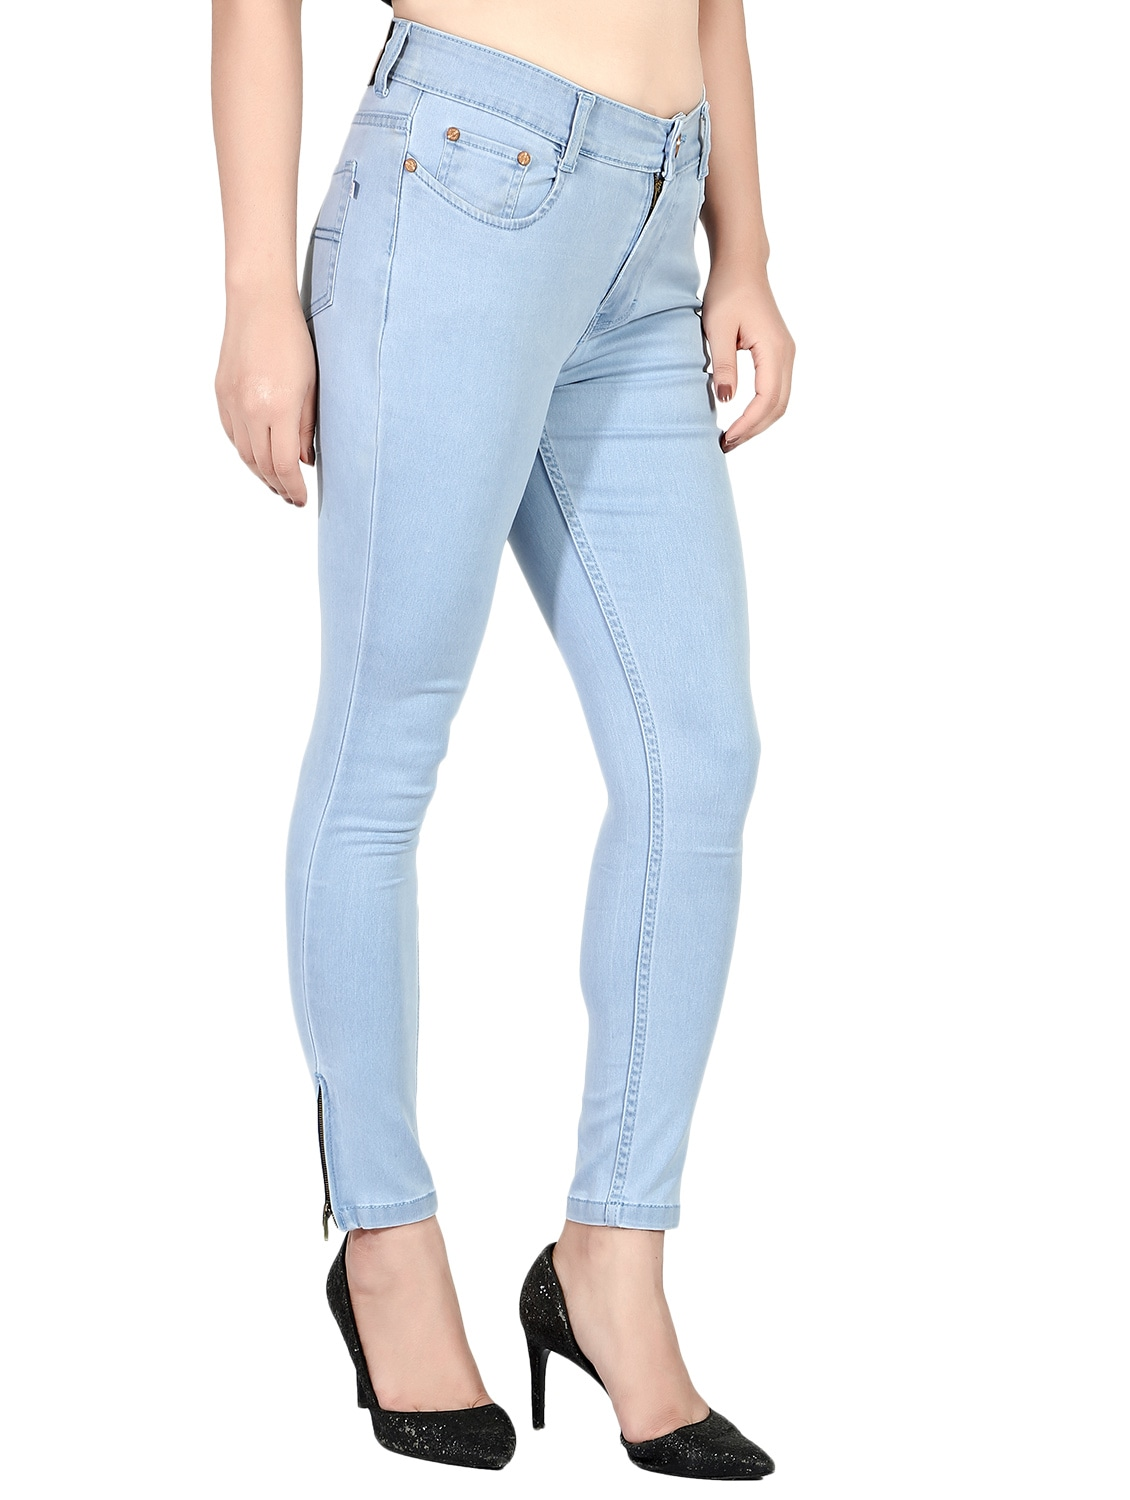 ac1791d7a8a Buy Light Blue Denim Jean by Fck-3 - Online shopping for Jeans in India